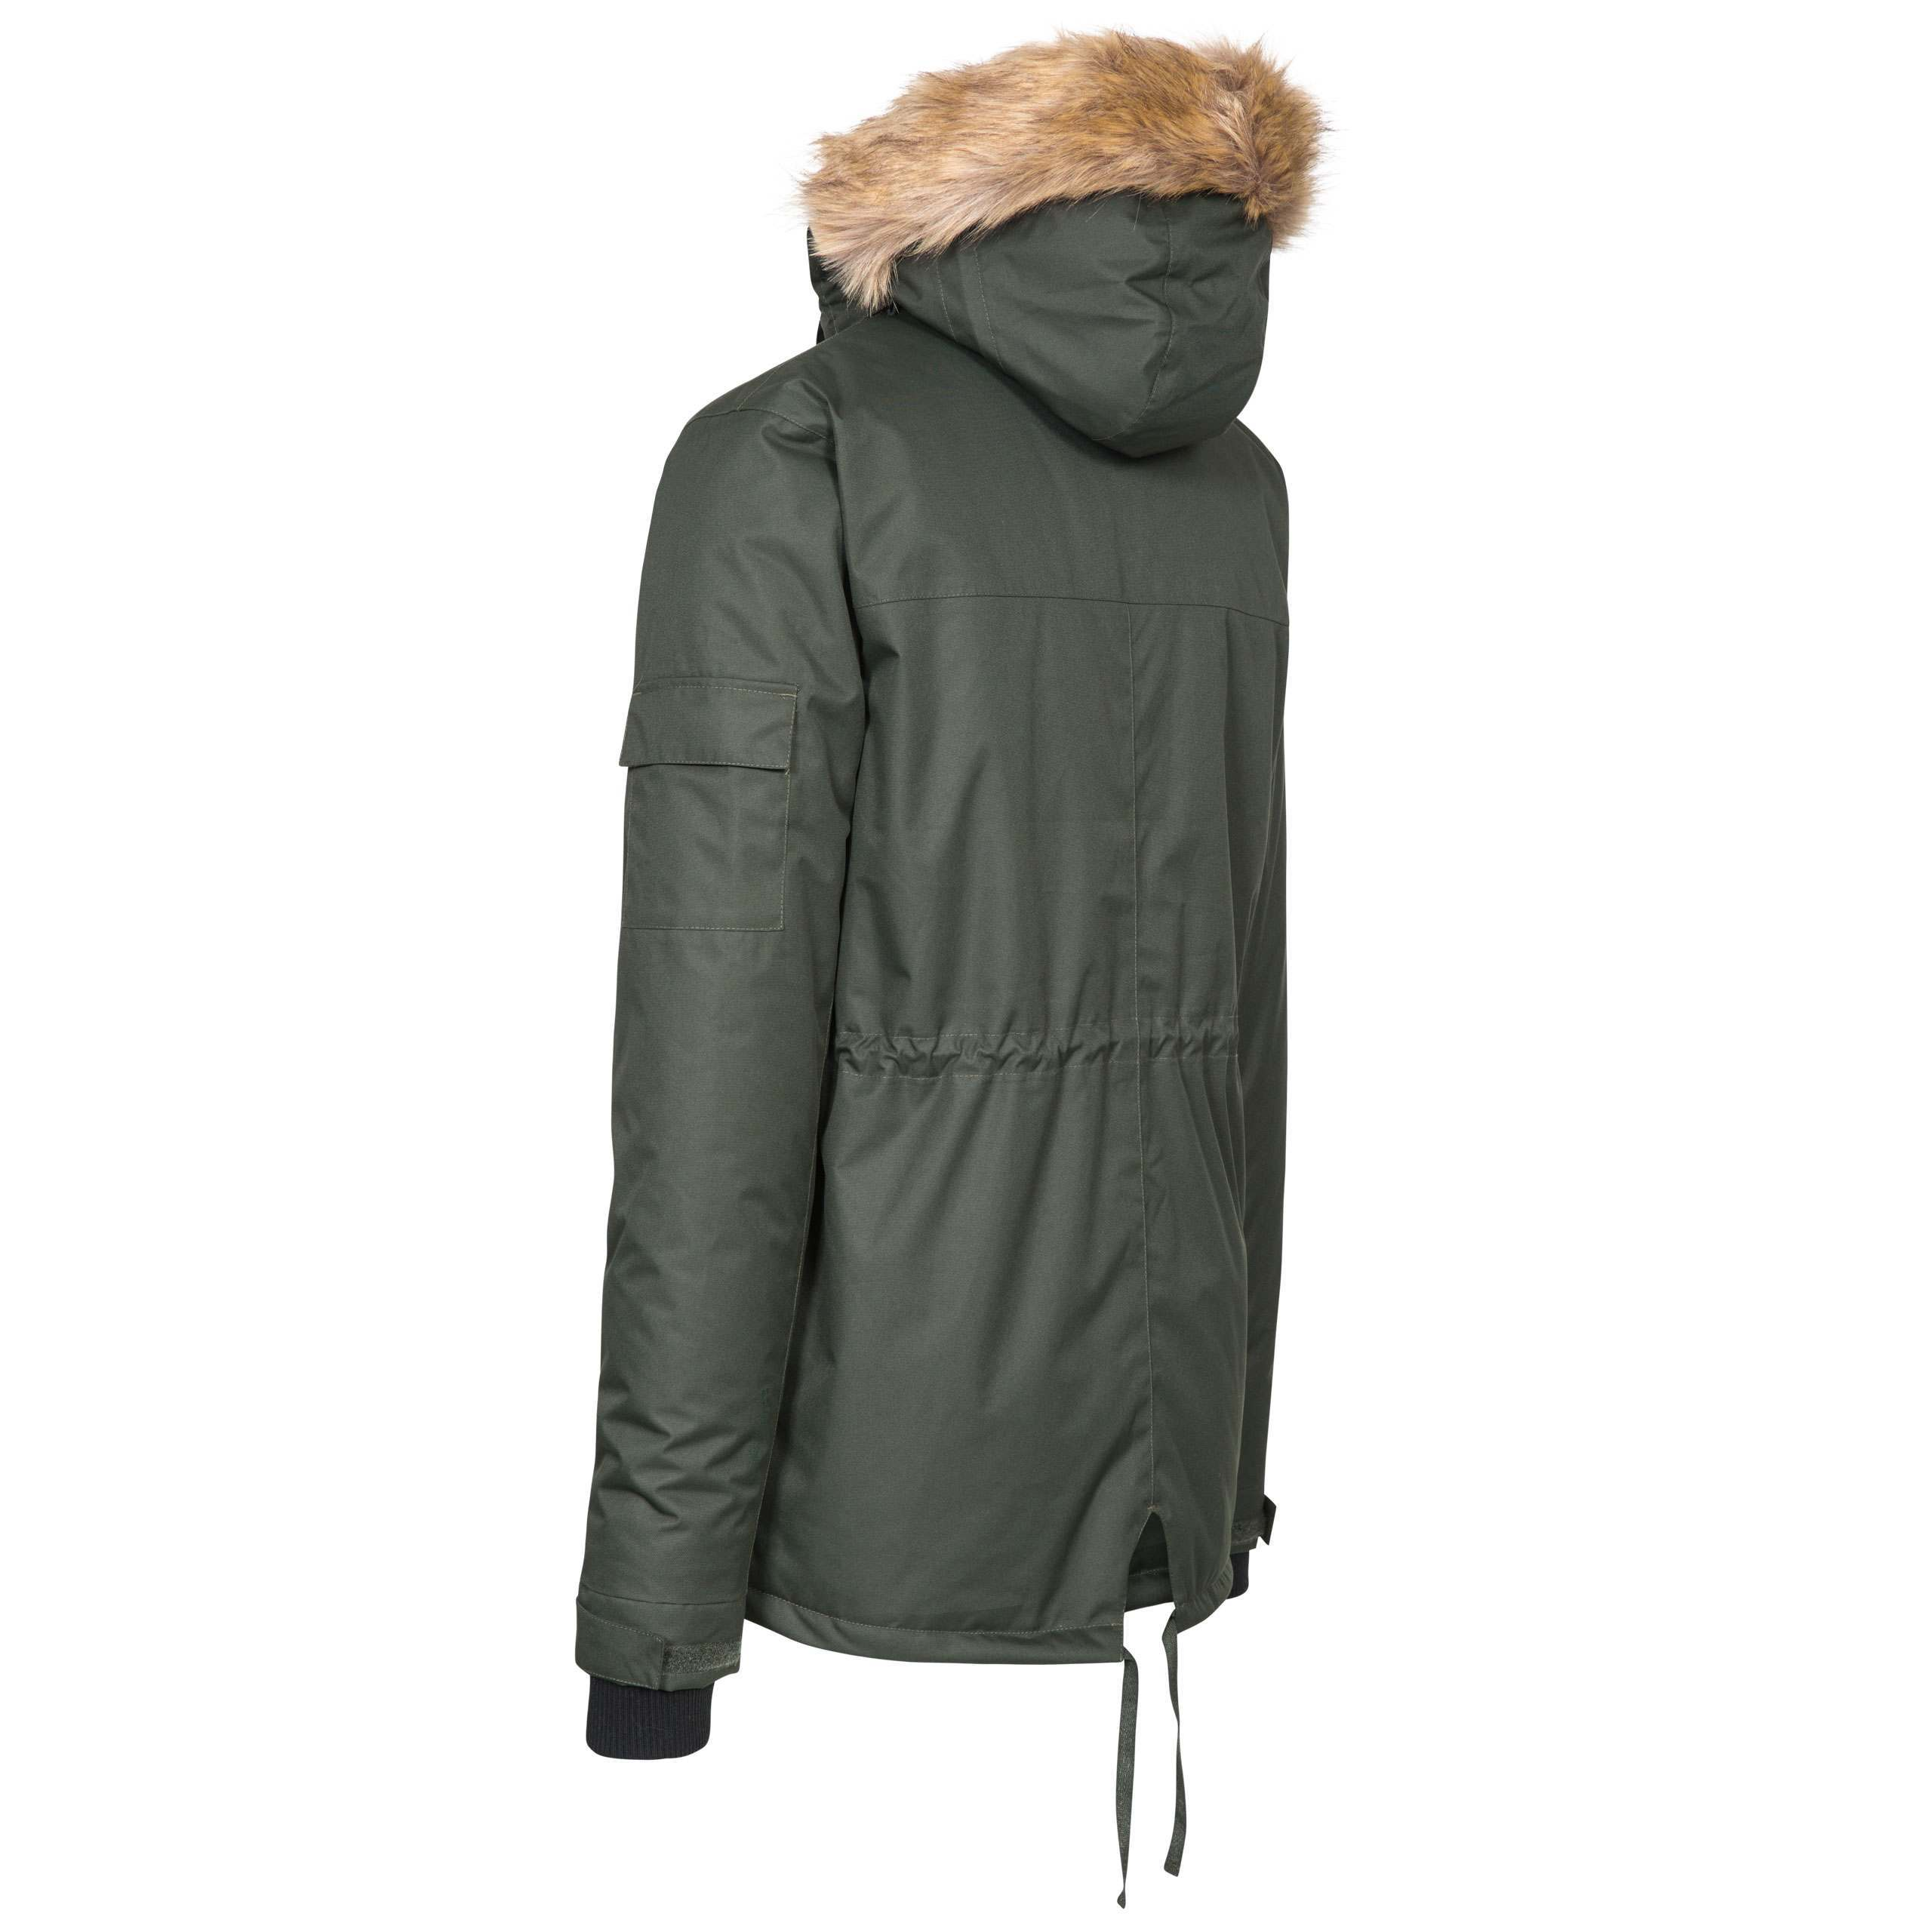 Trespass-Mens-Parka-Jacket-Winter-Waterproof-Coat-with-Fleece-amp-Hood thumbnail 16